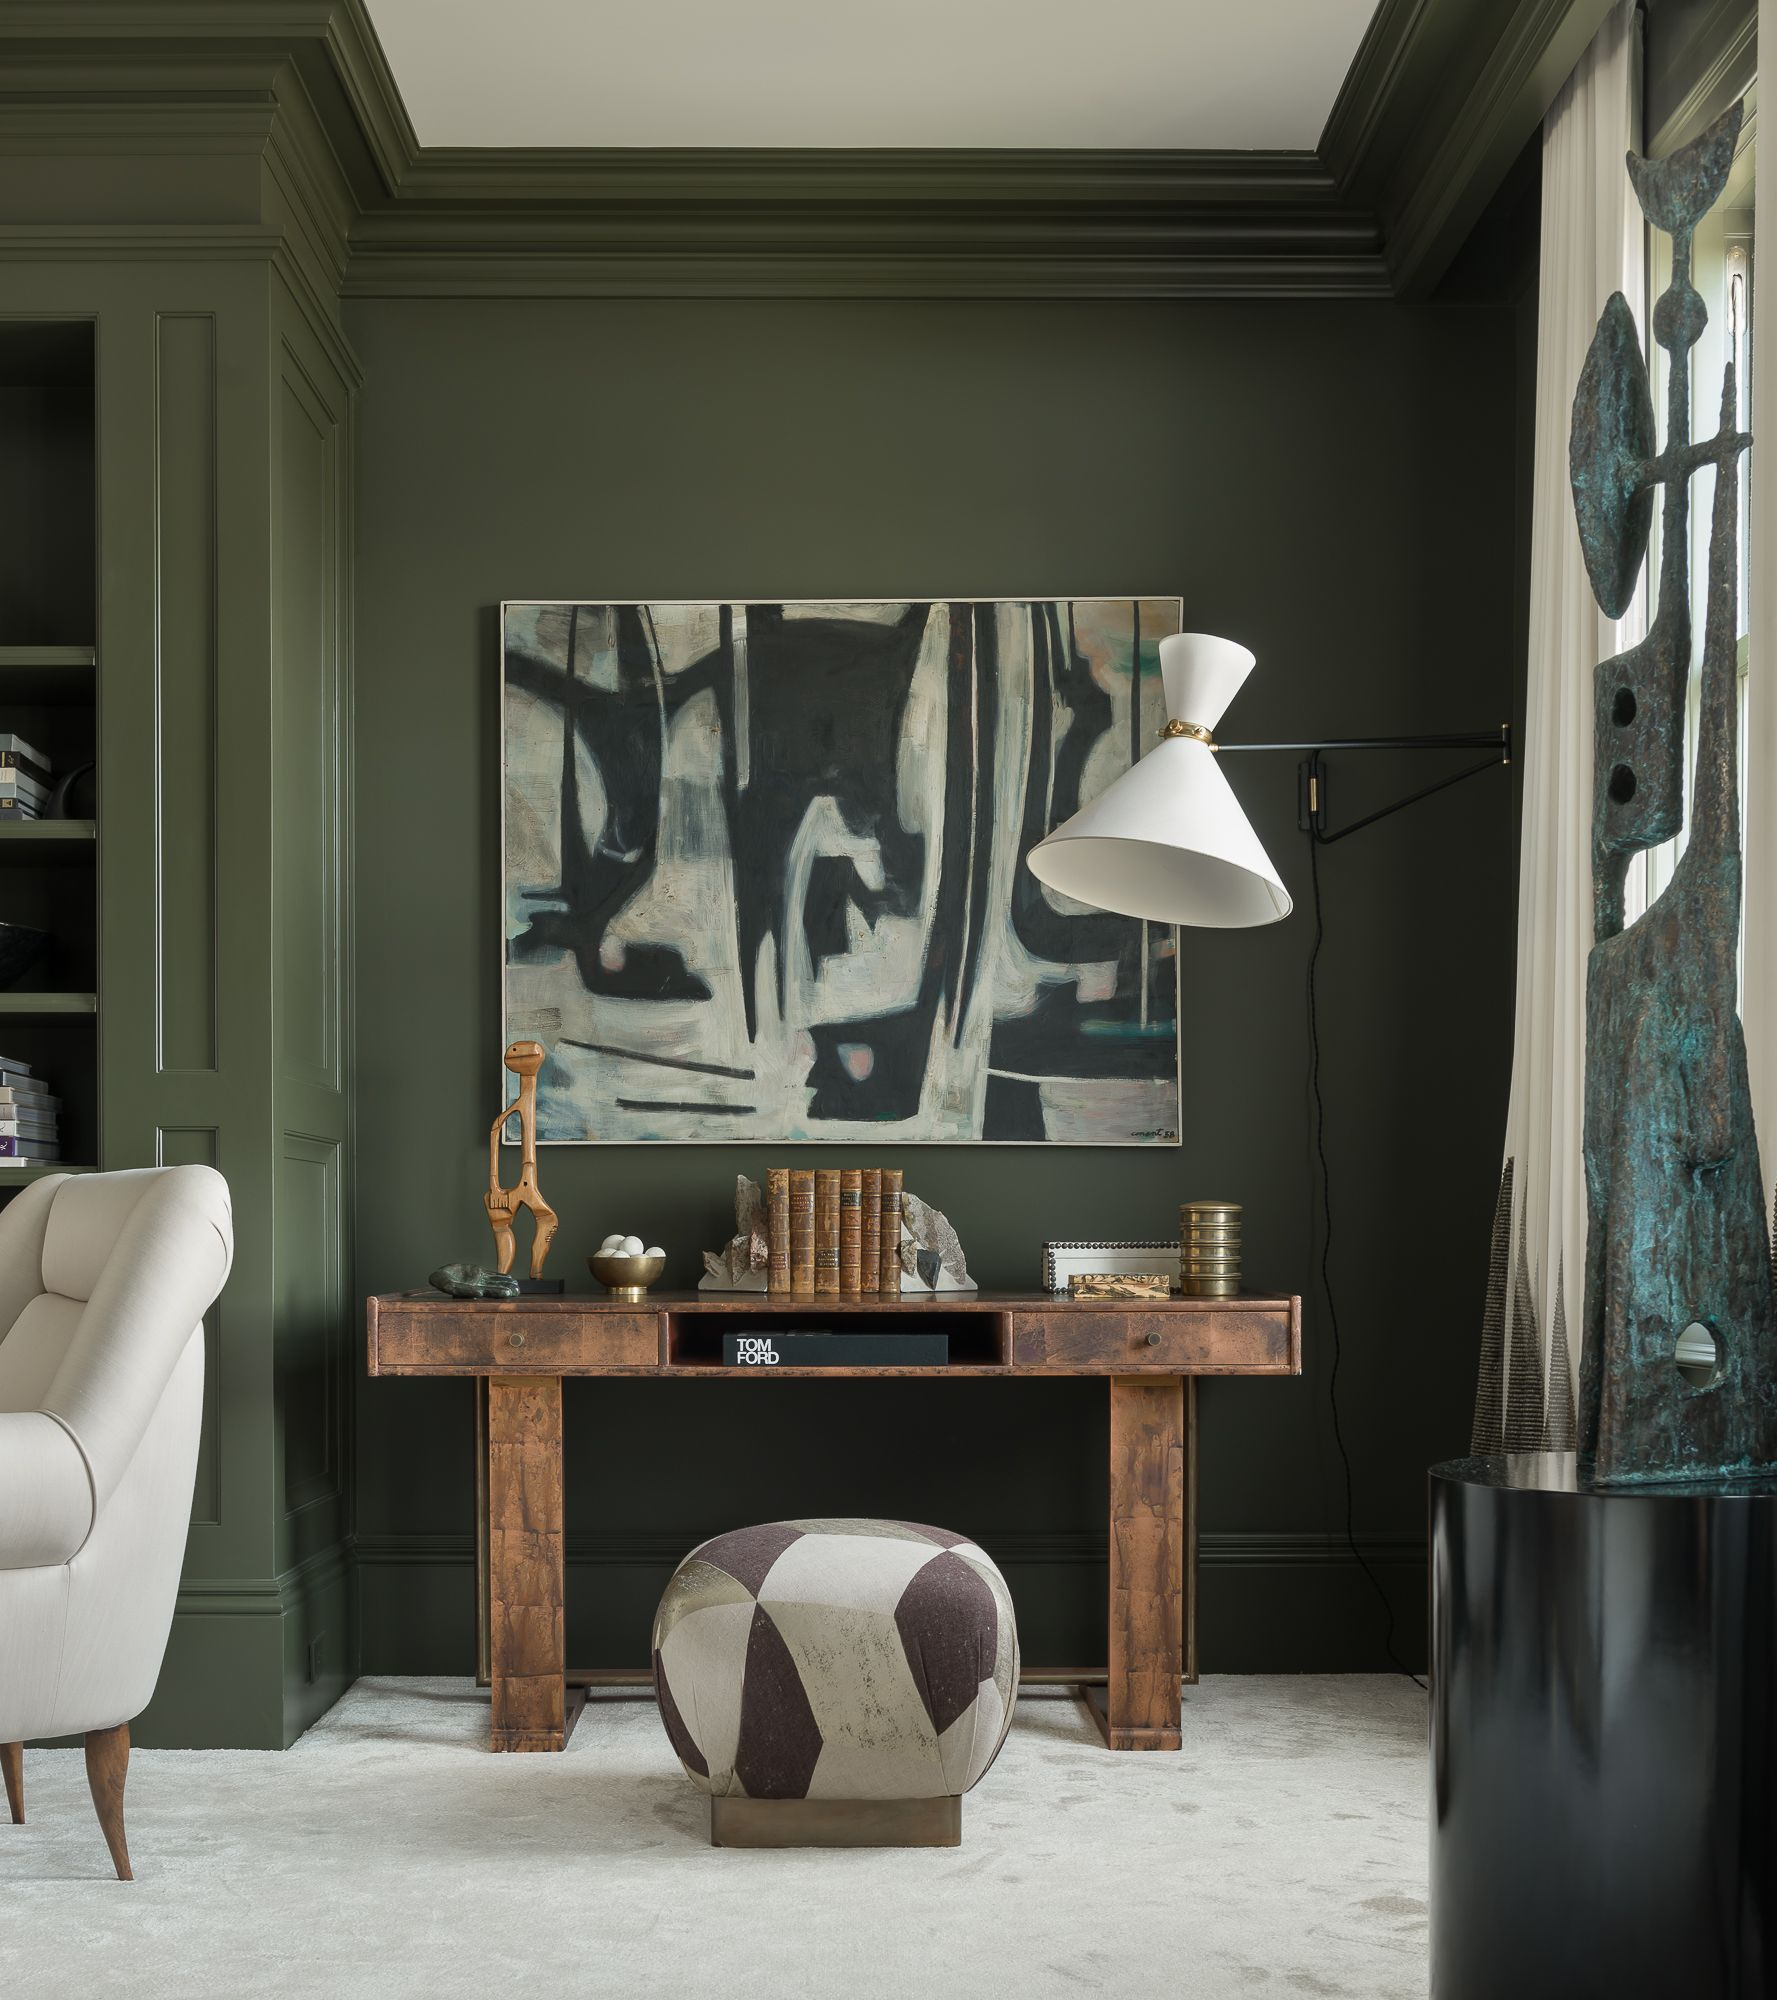 Olive Green Wall Decor These Are The Color Trends Everyone Will Be Talking About